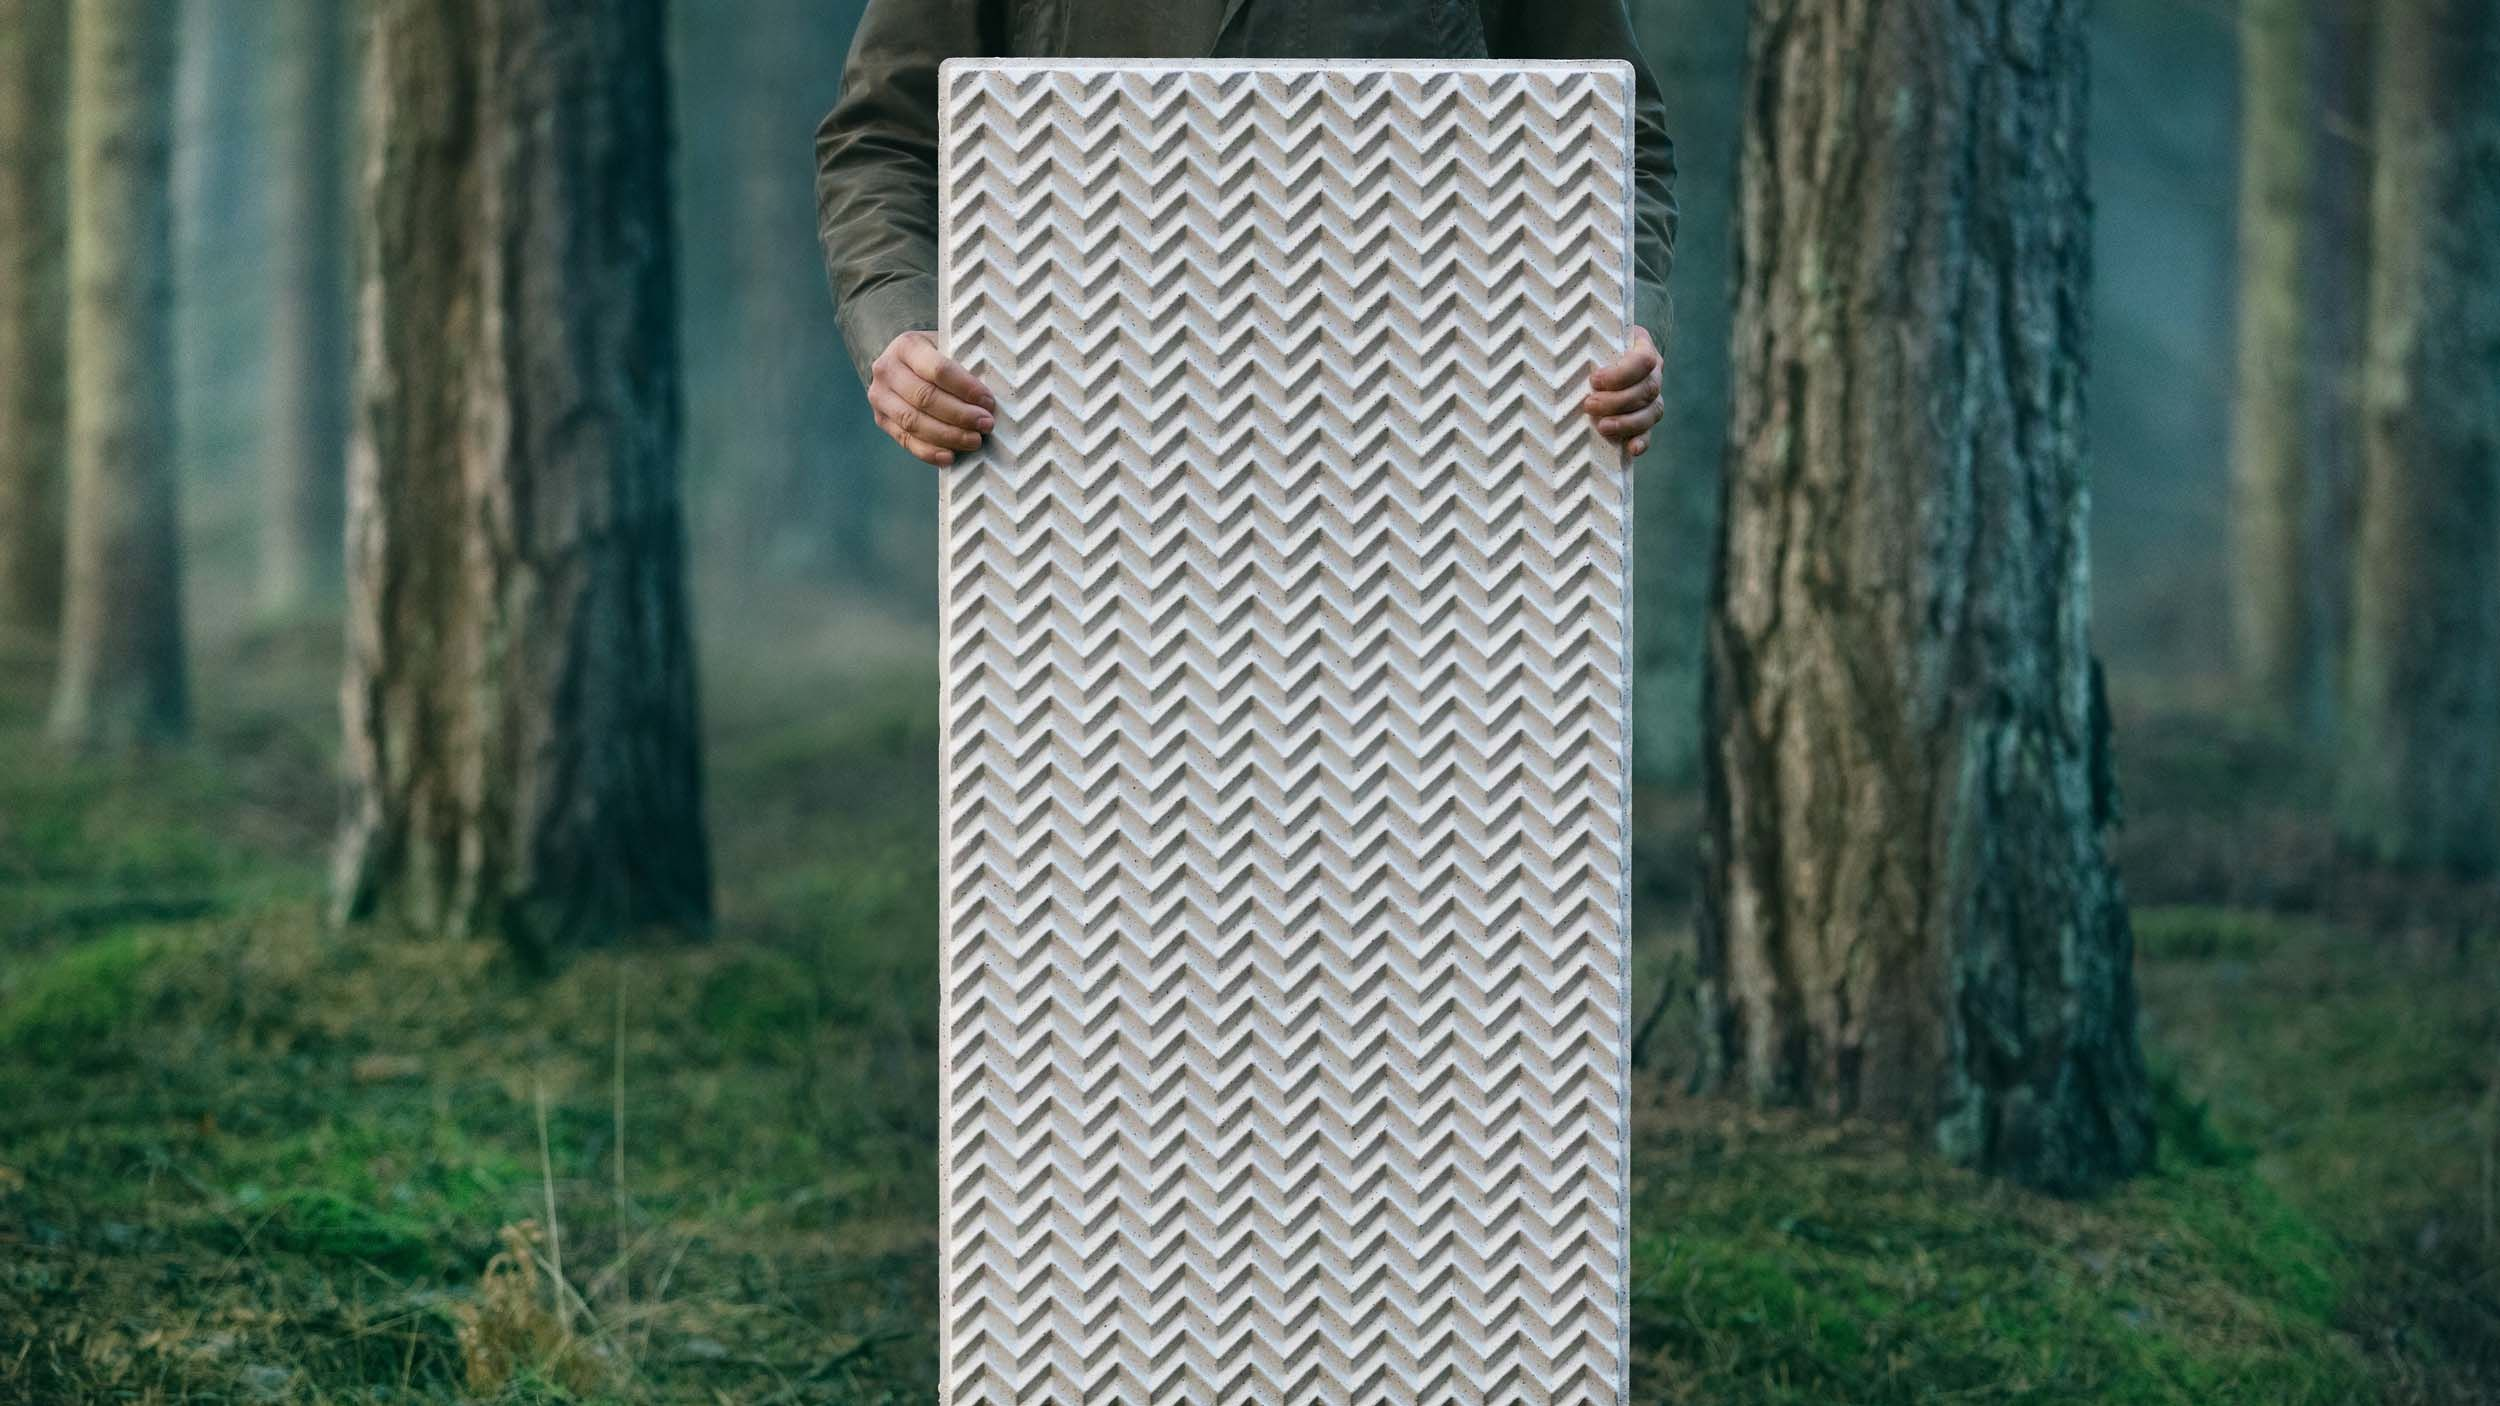 Pale panel held by person in woodland